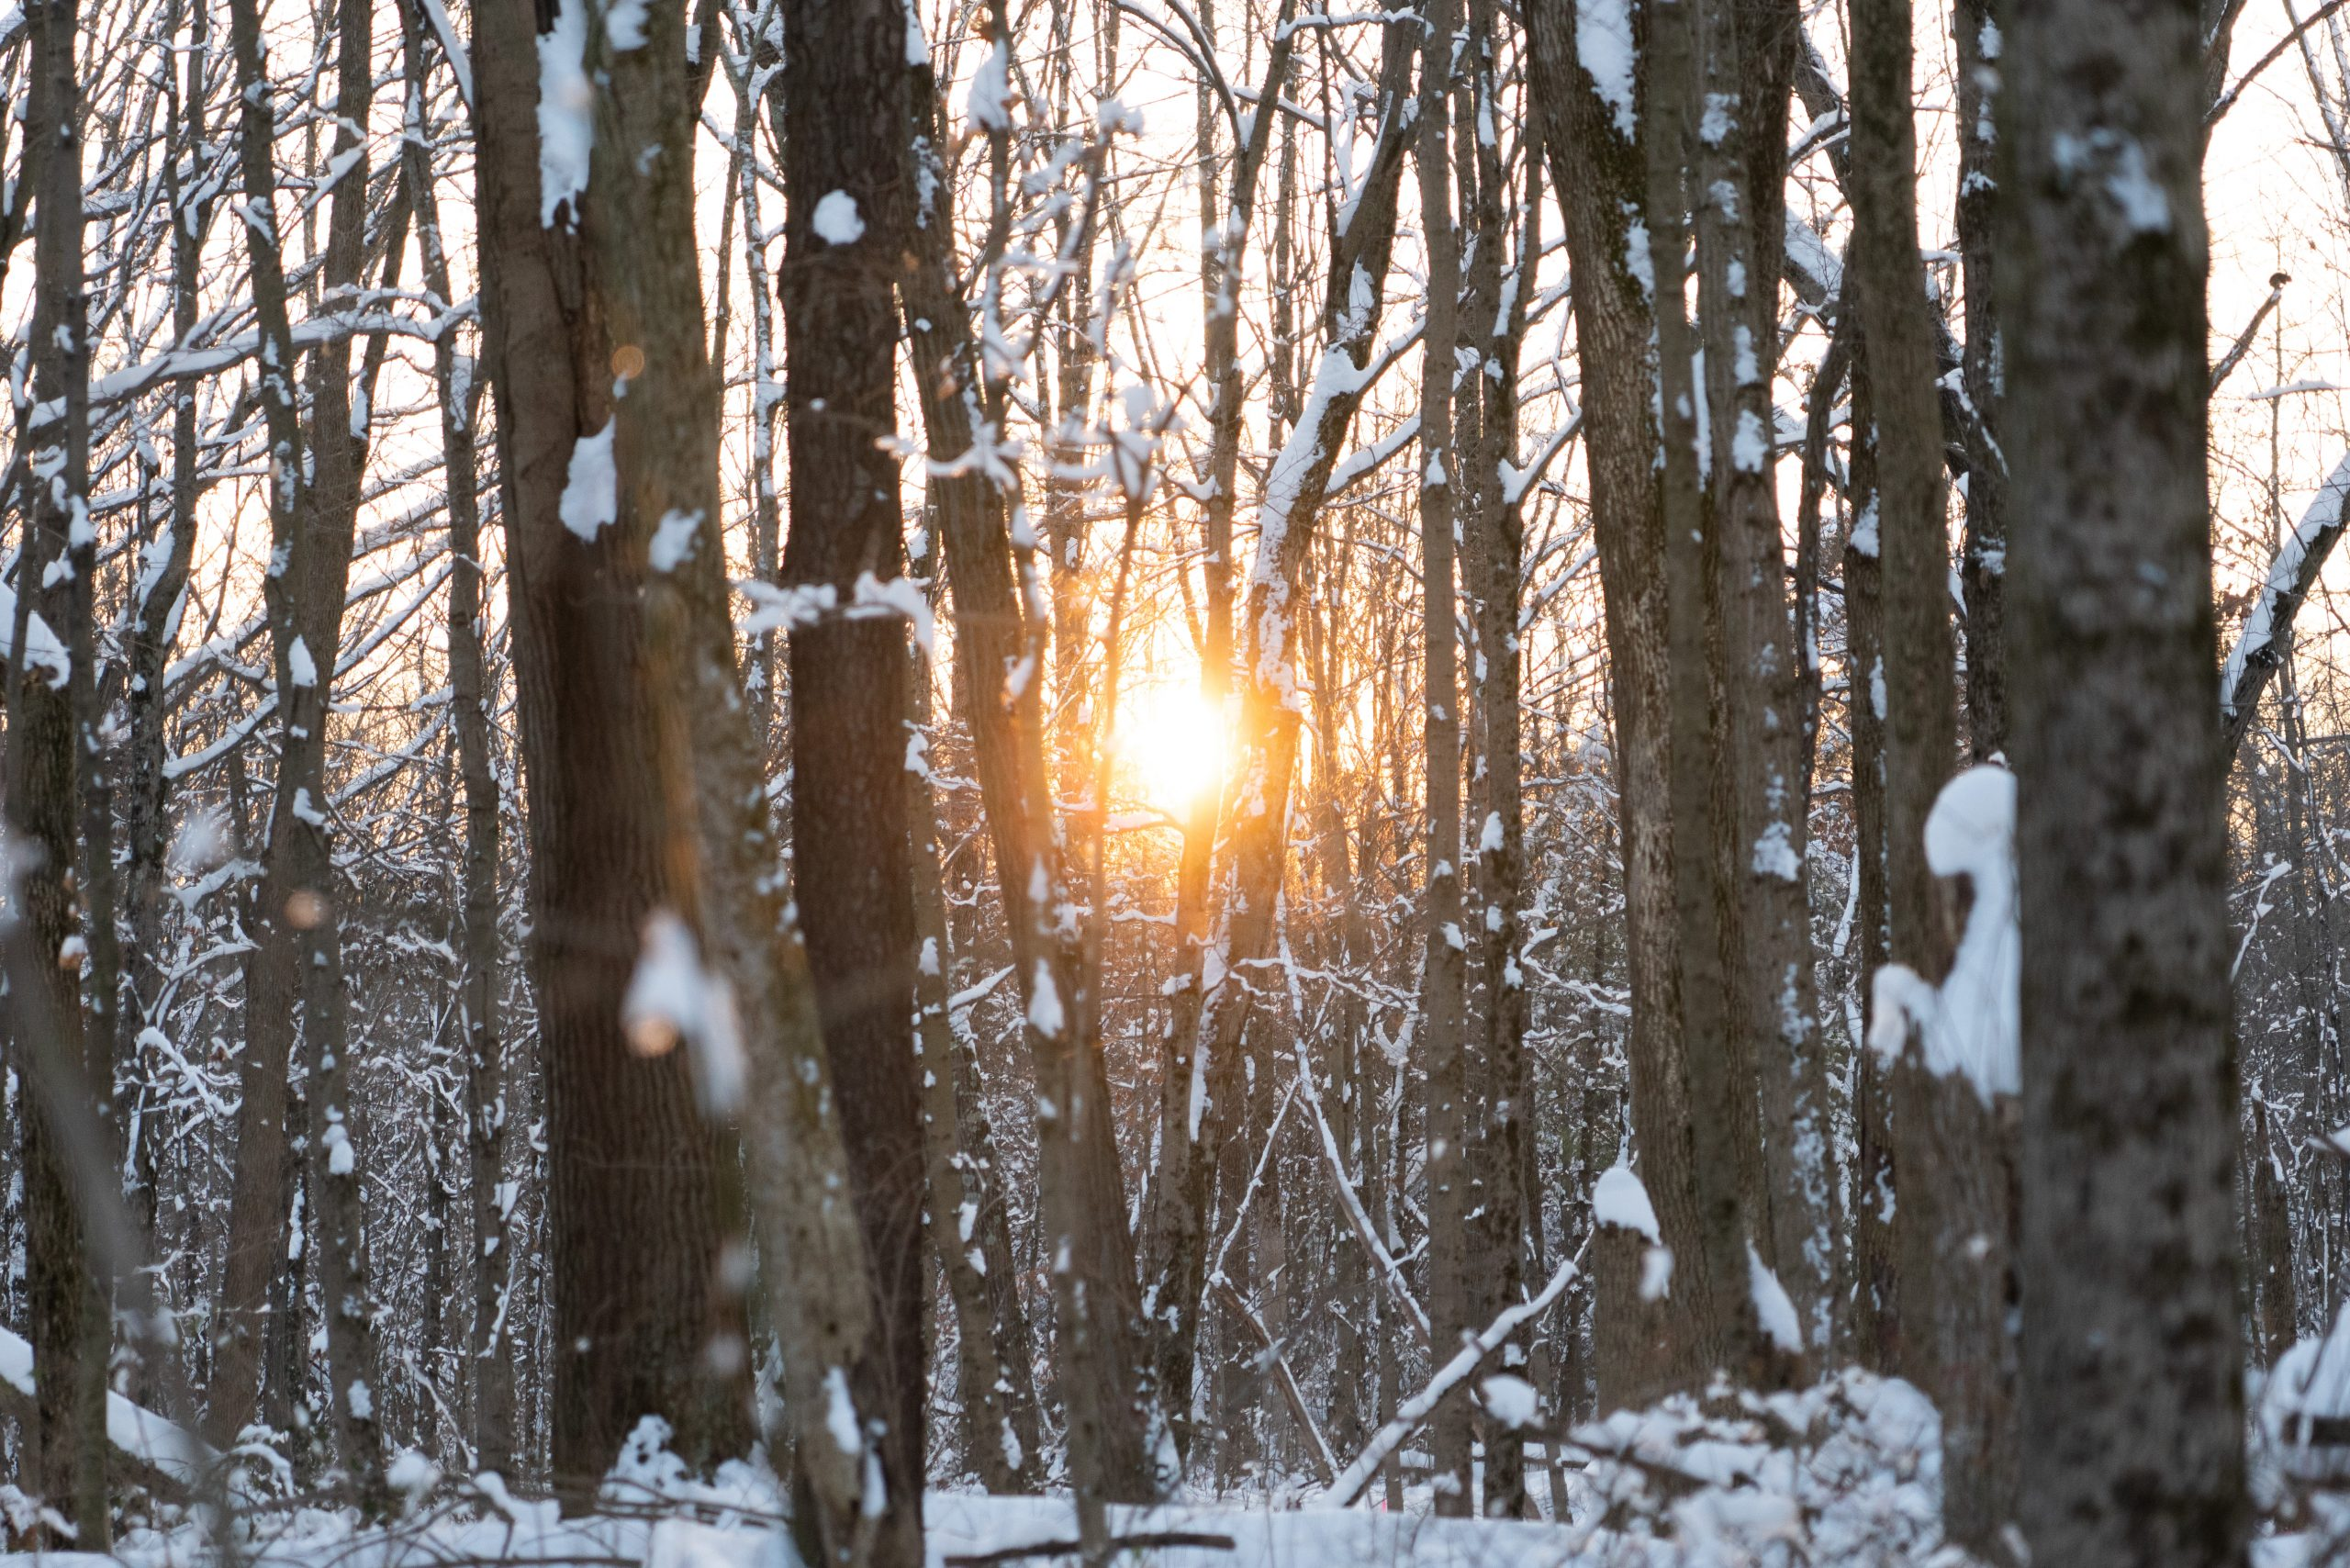 The sun sets among snow-covered trees at Winton Woods.